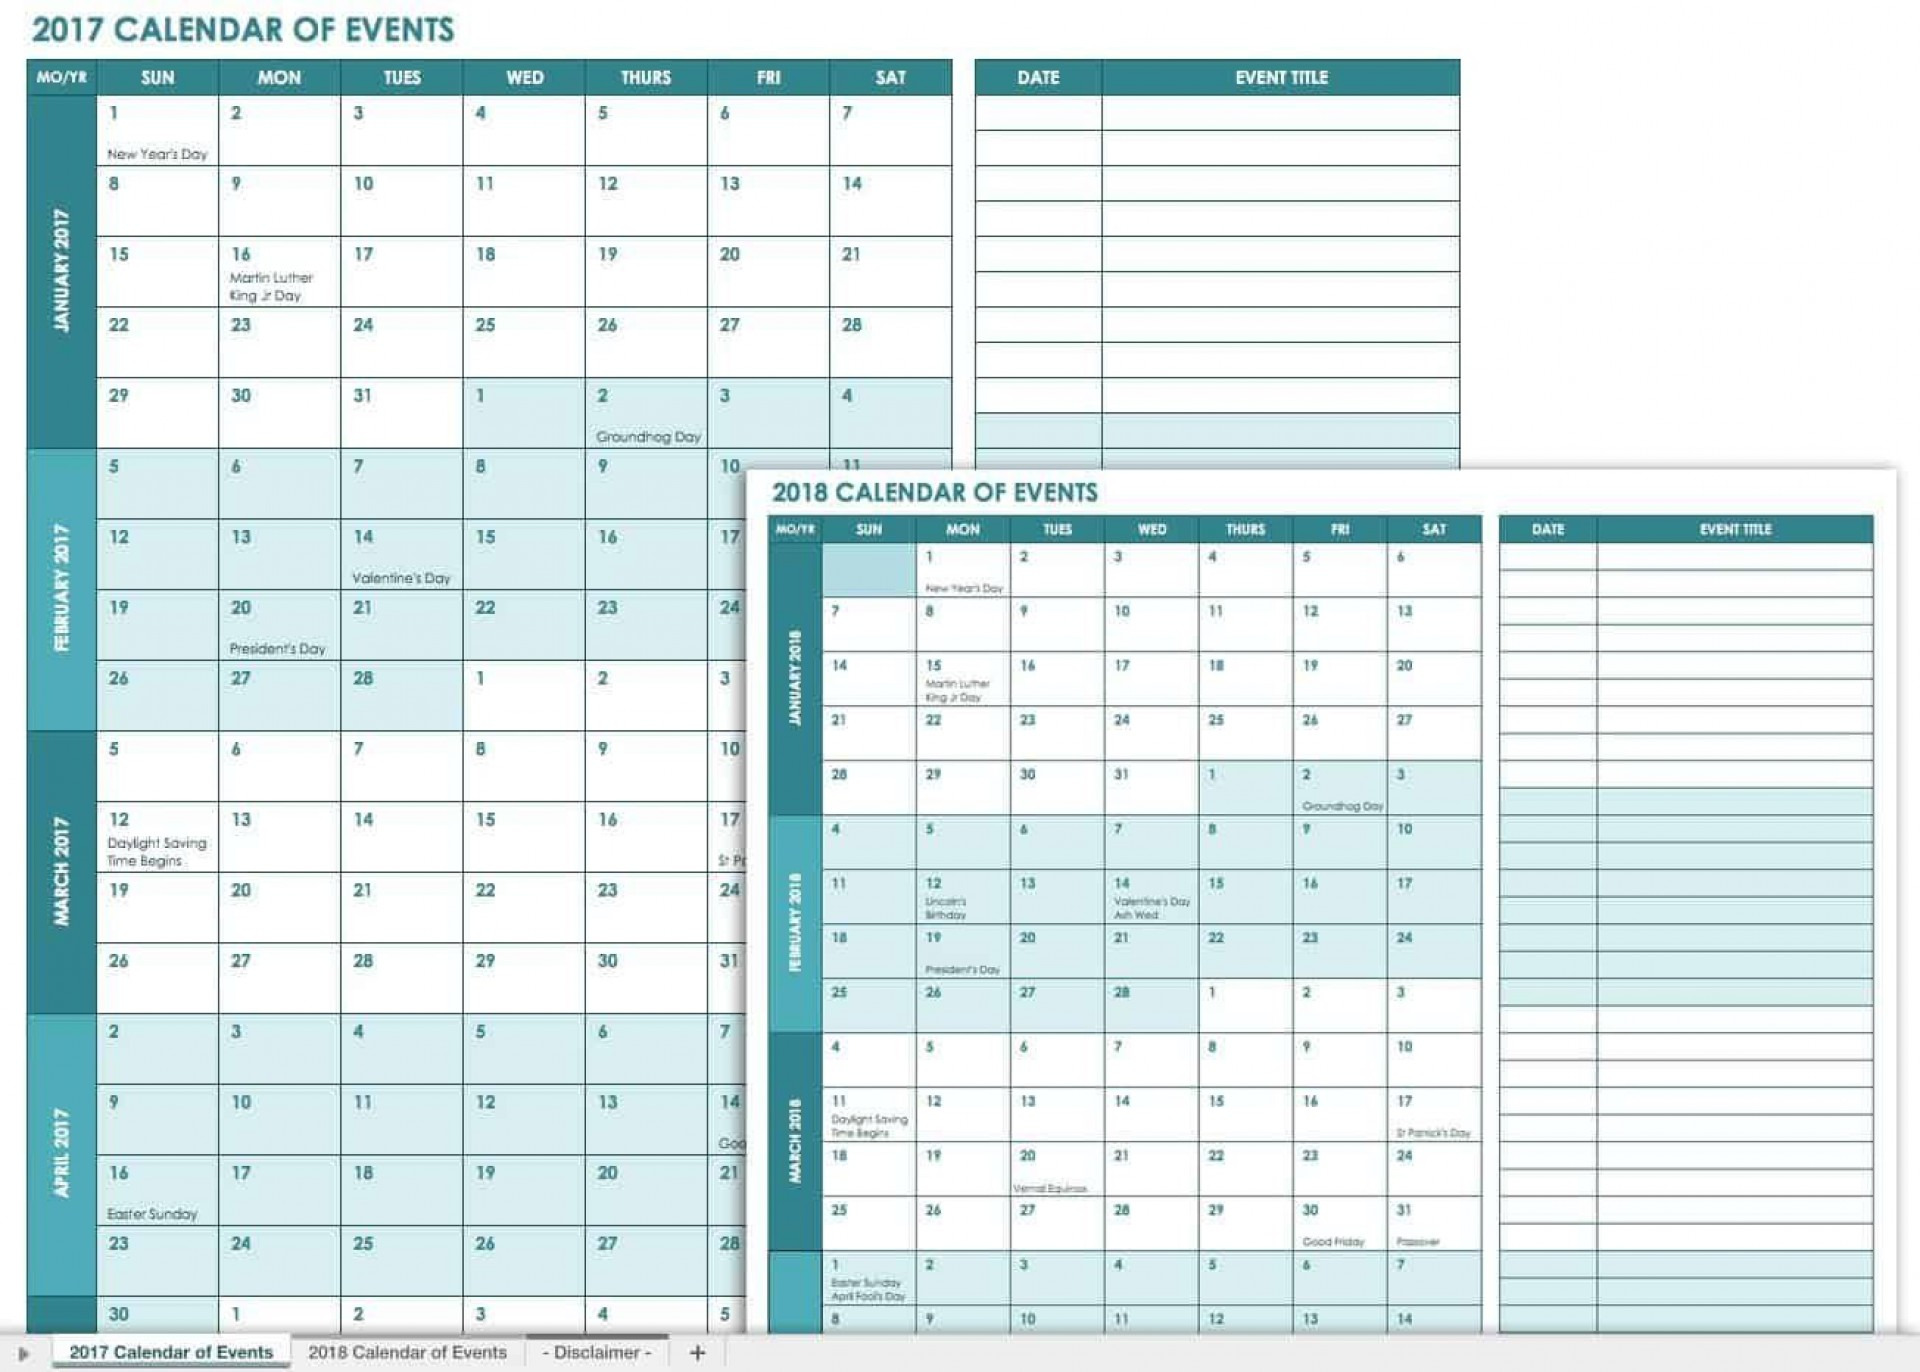 008 Outstanding Event Planning Timeline Template Highest Clarity  Free Excel1920